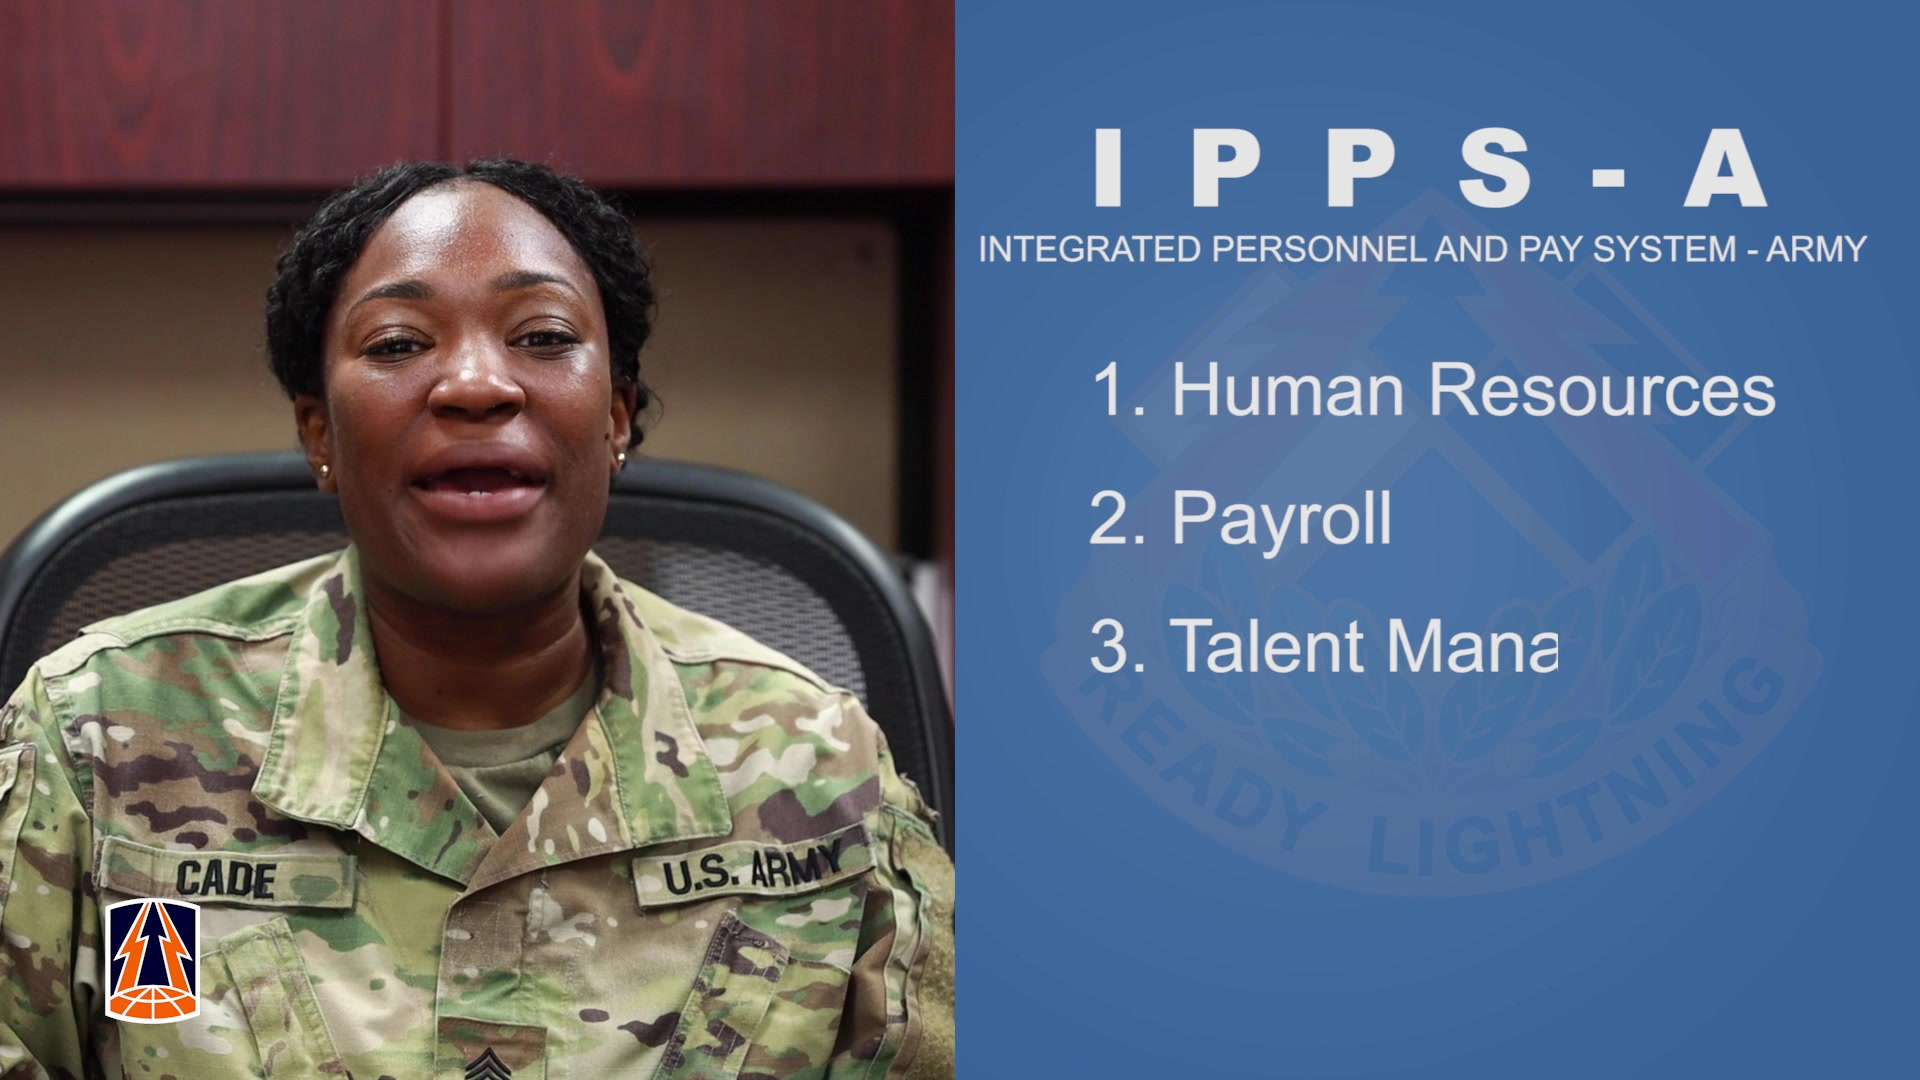 """The 335th Signal Command (Theater) is getting """"so excited"""" about the upcoming release of IPPS-A, the Integrated Personnel and Pay System - Army. Members of our G1 section share some of the ways that IPPS-A will improve Army human resource systems. Take a look!  (U.S. Army Reserve video by Staff Sgt. Leron Richards)"""